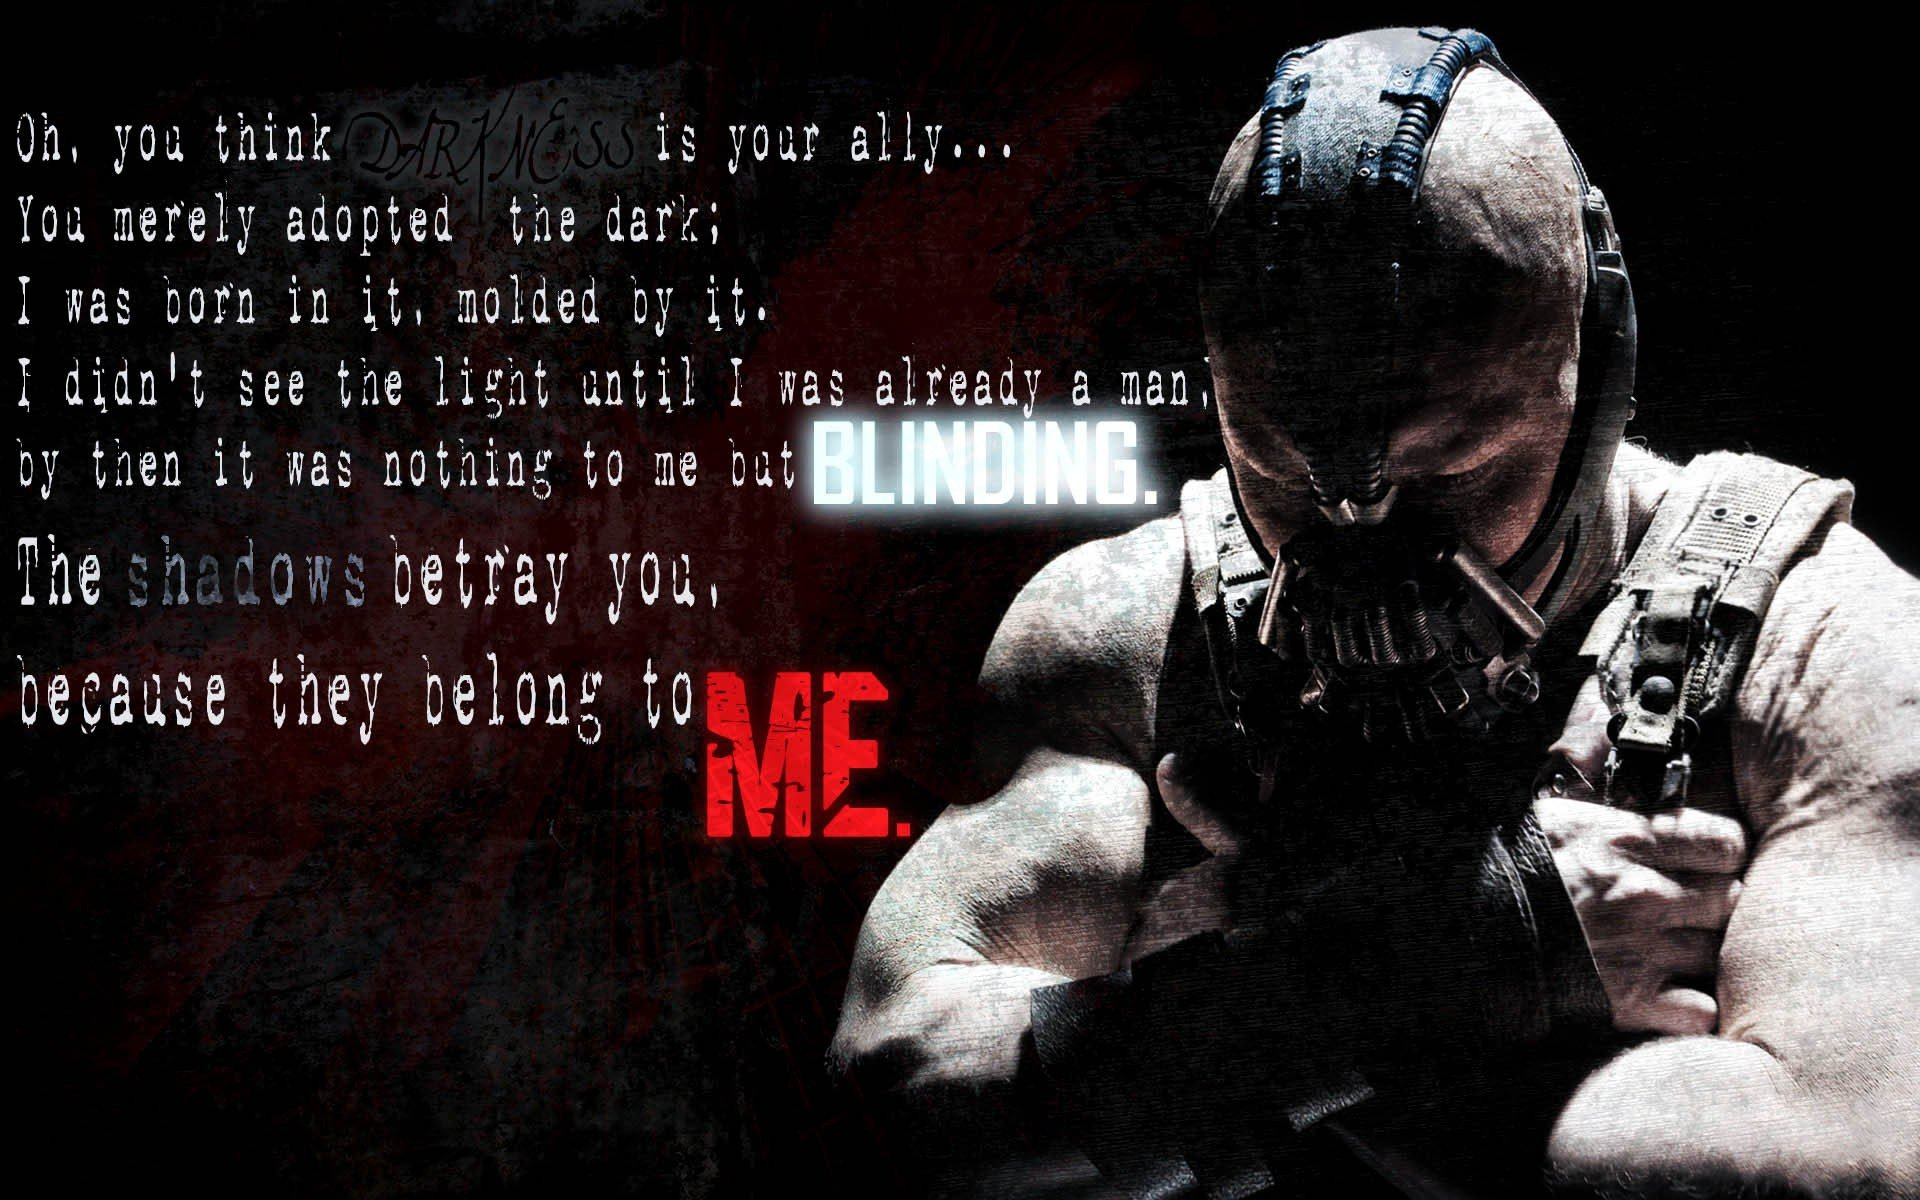 Quotes From Batman Movies Batman Movies Text Bane Batman